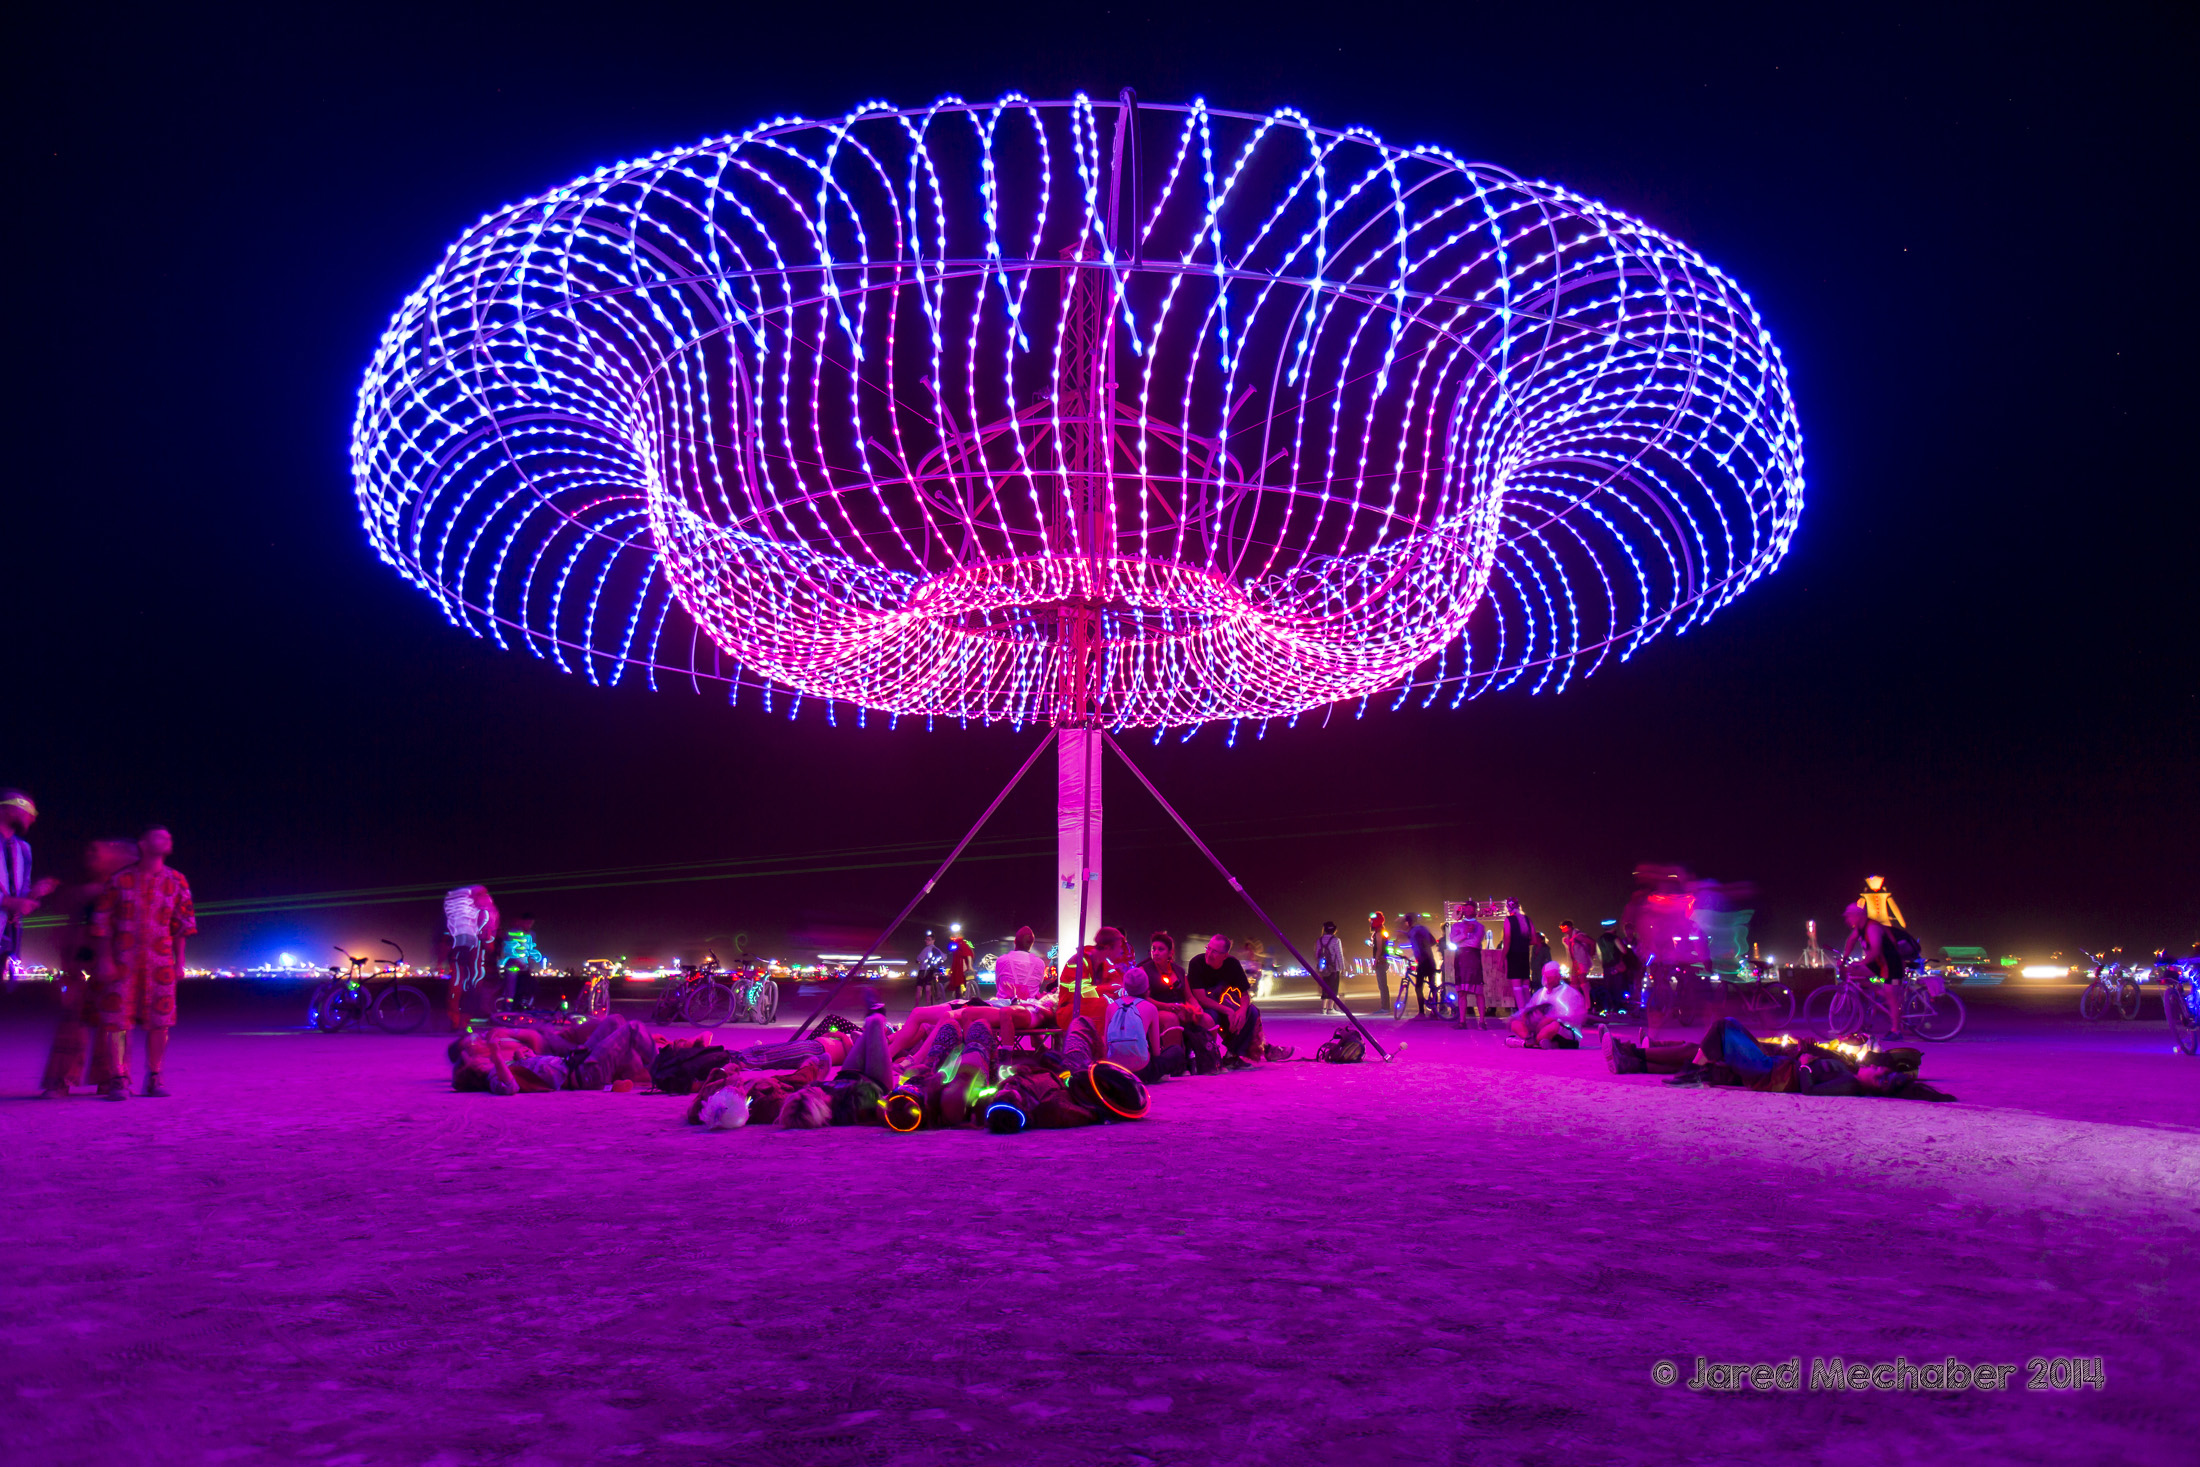 11-140827_Burningman_2382.JPG